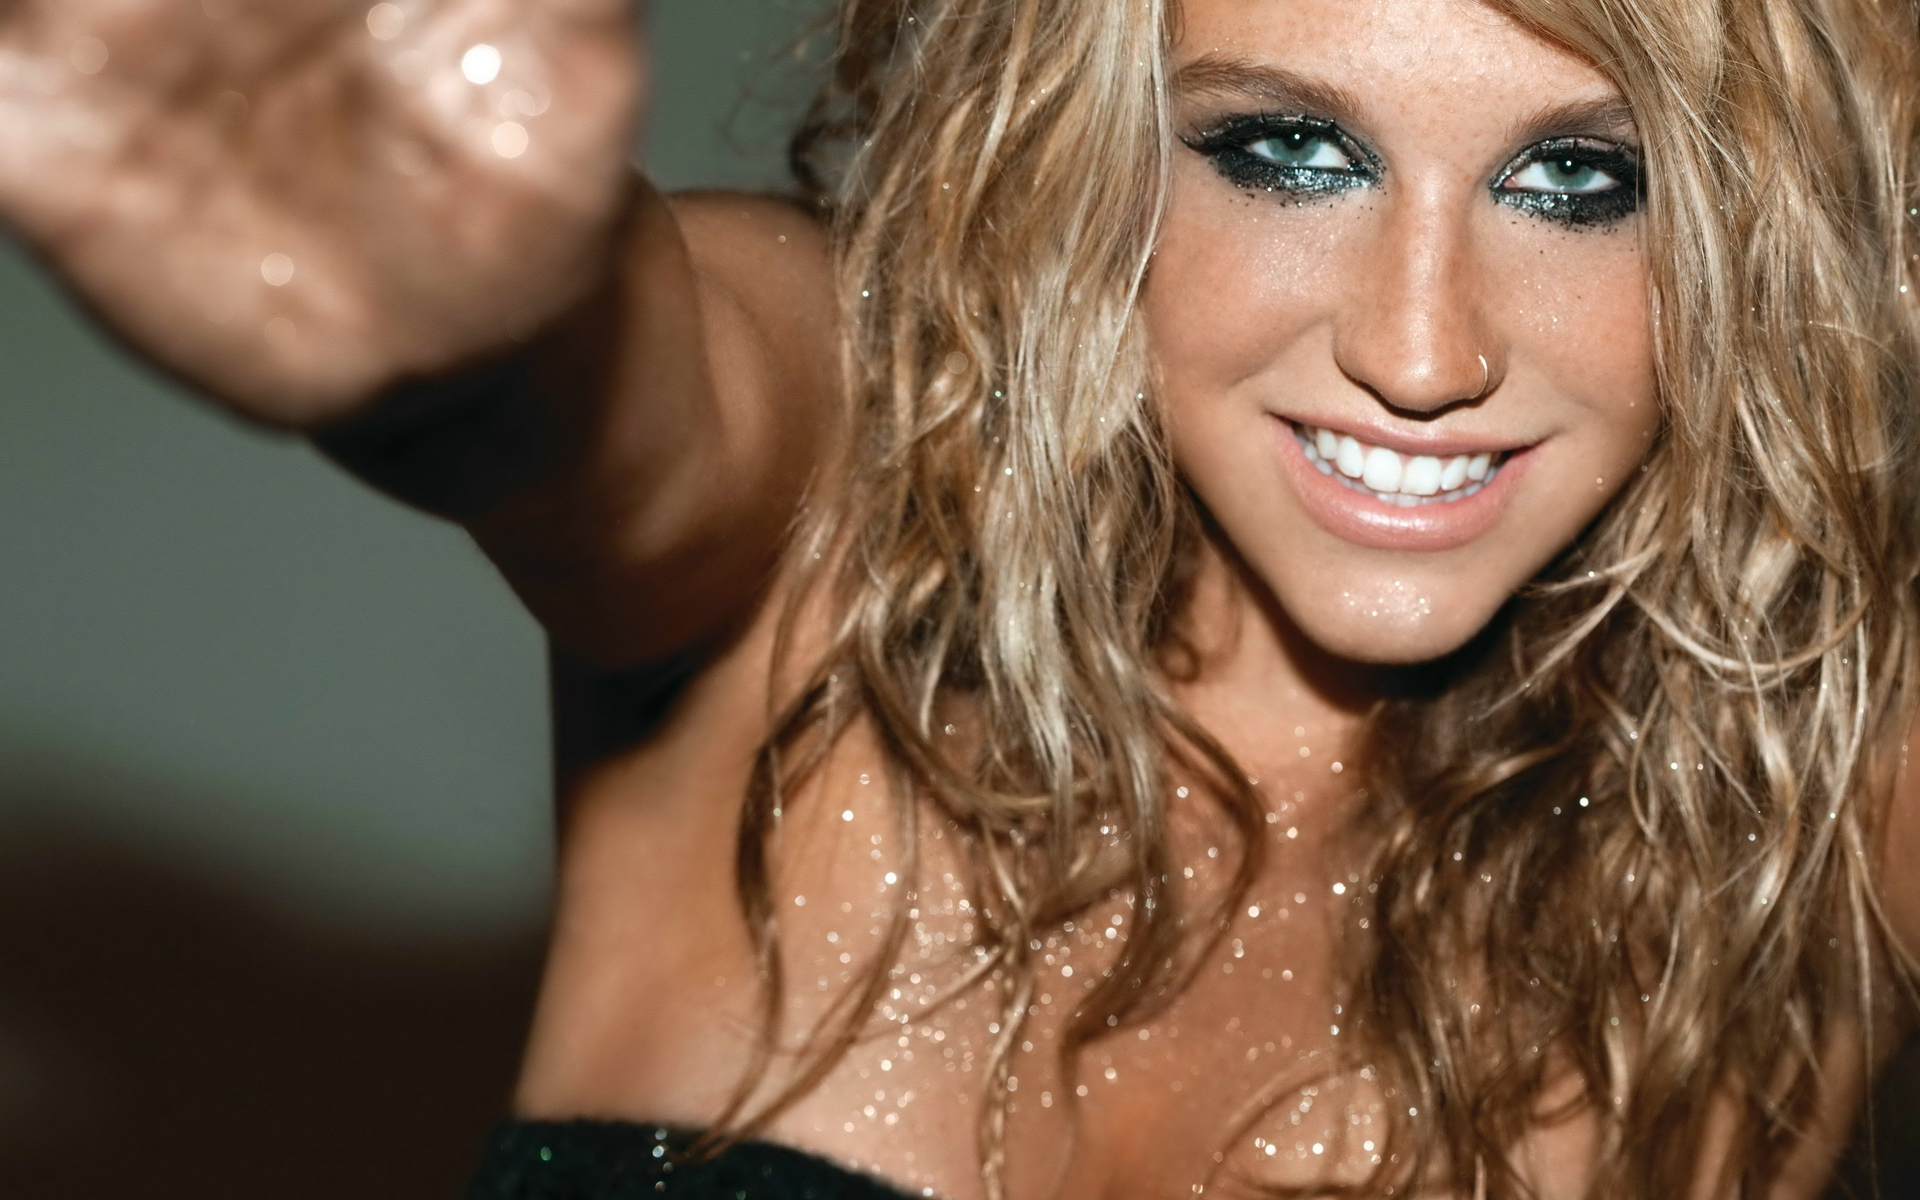 Ke$ha Has A Near Genius IQ! | UberFacts